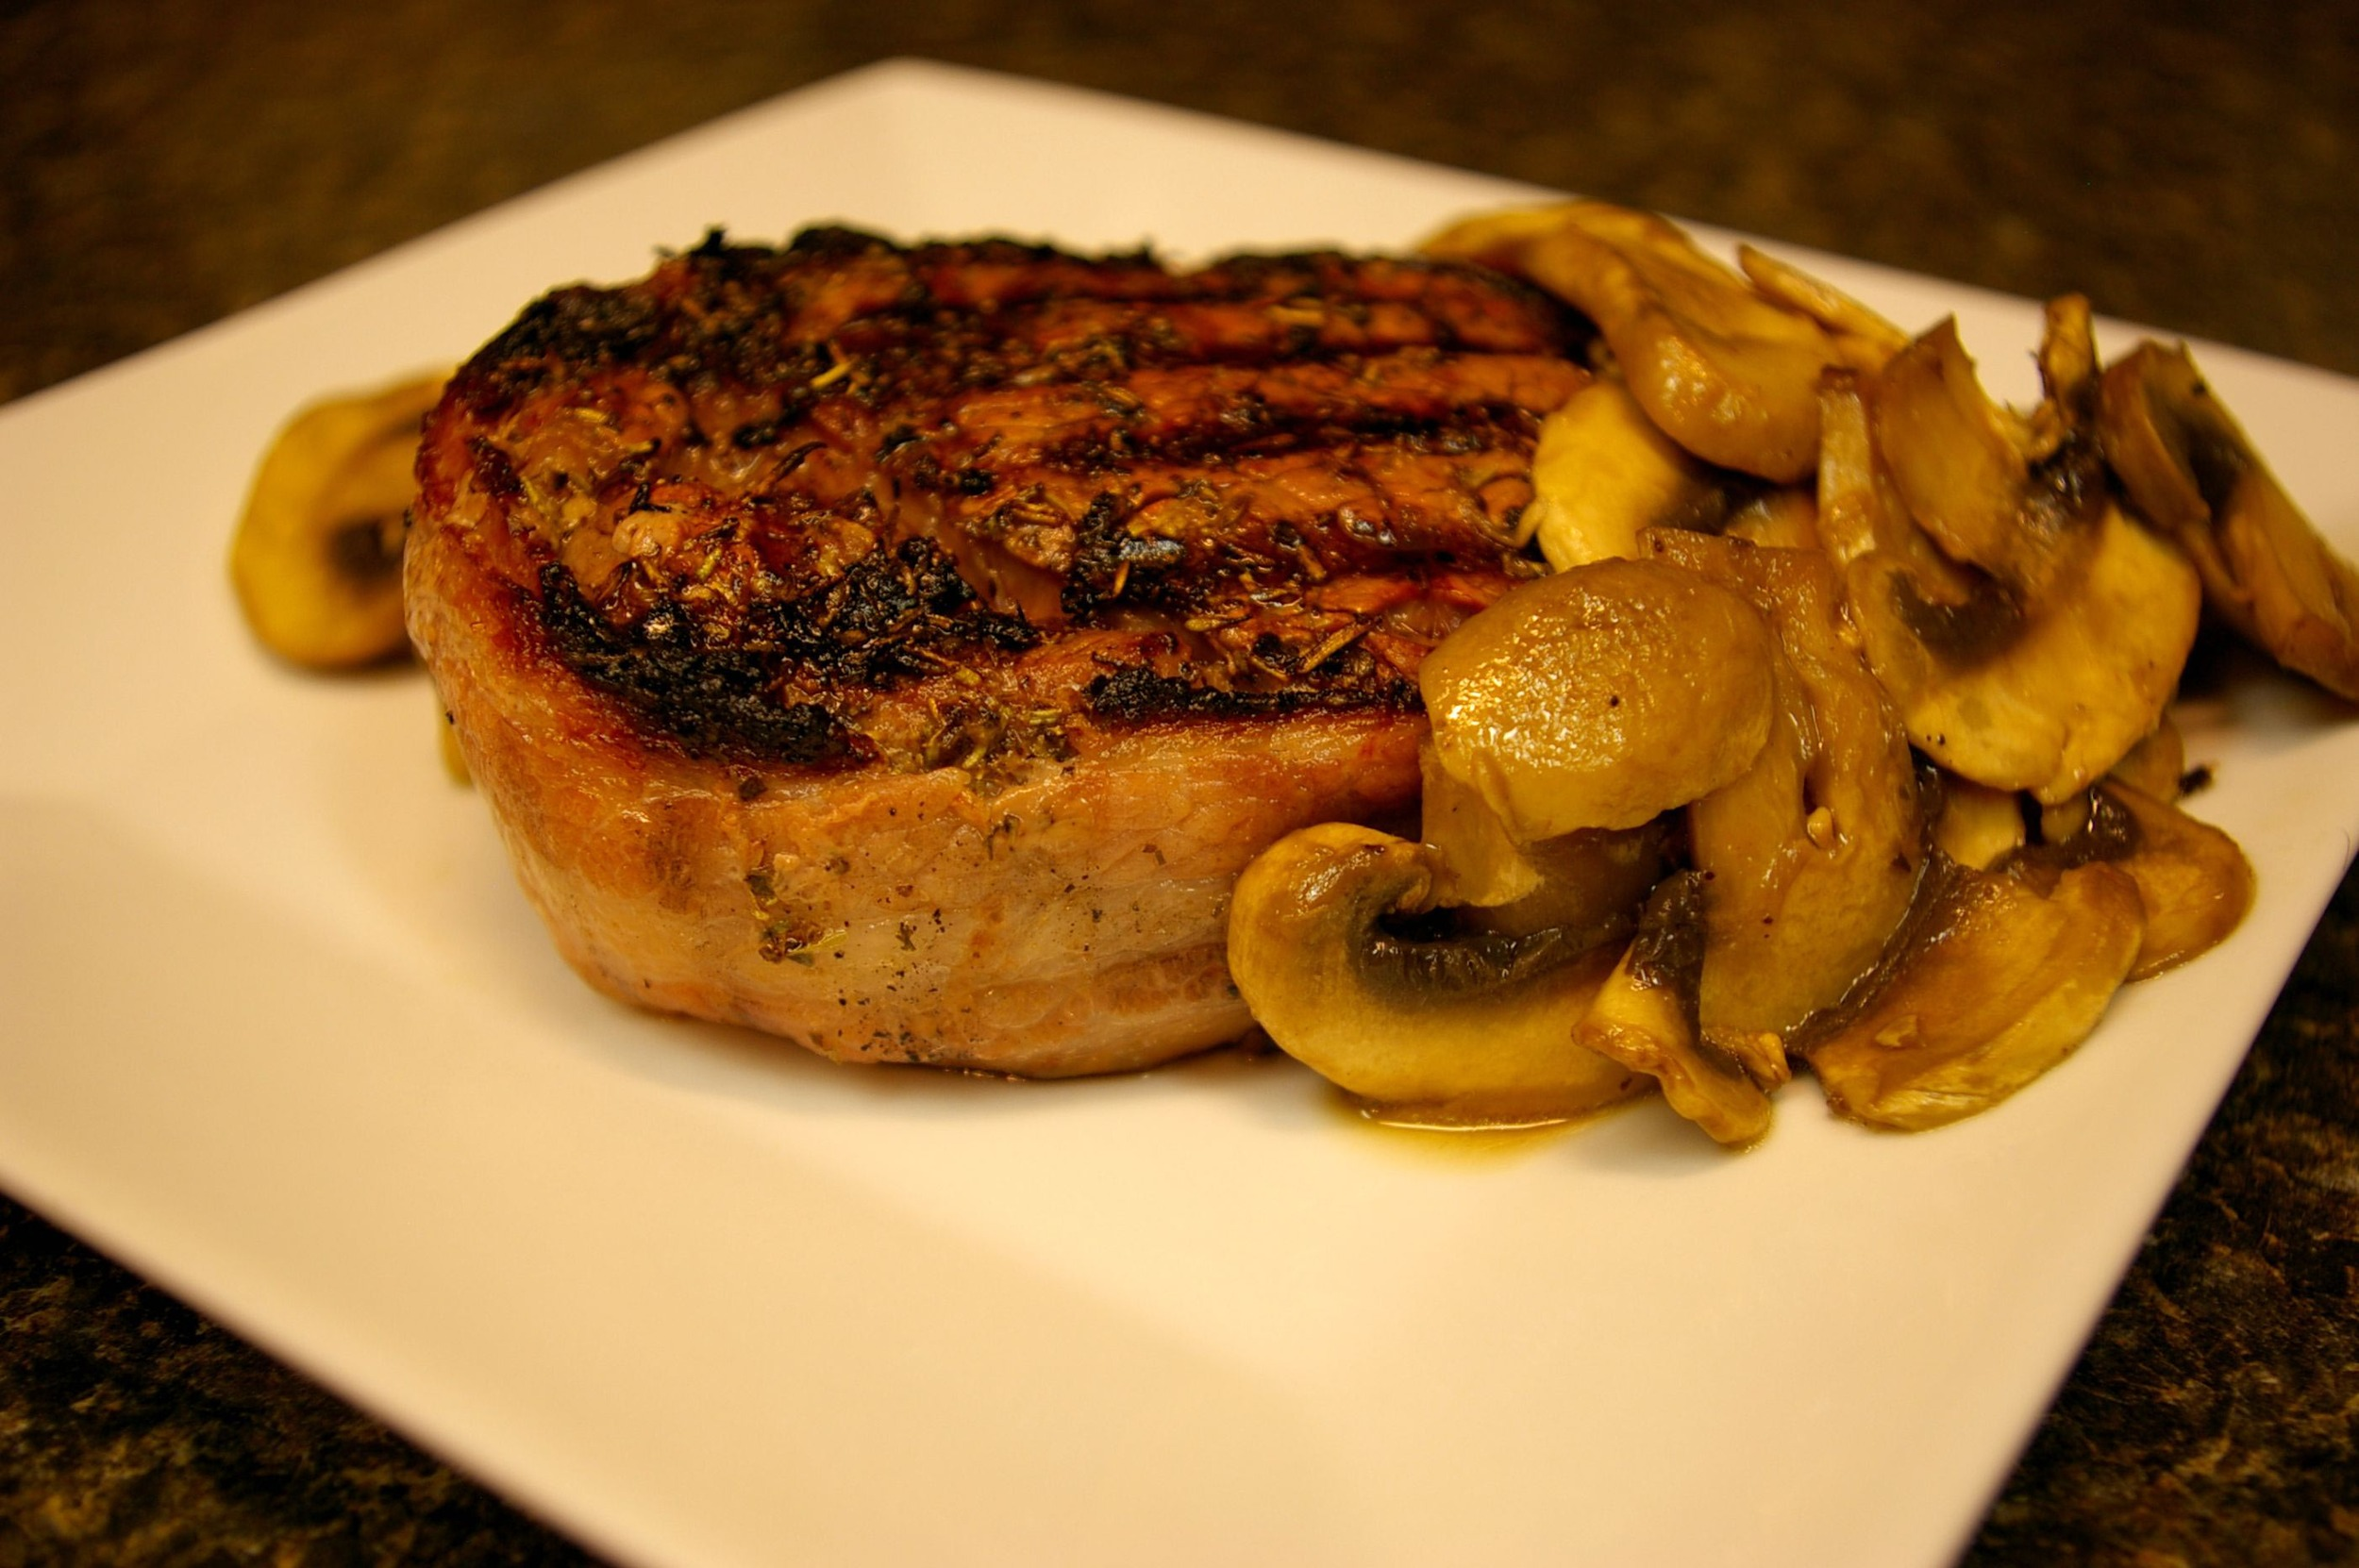 Chili rib eye steak